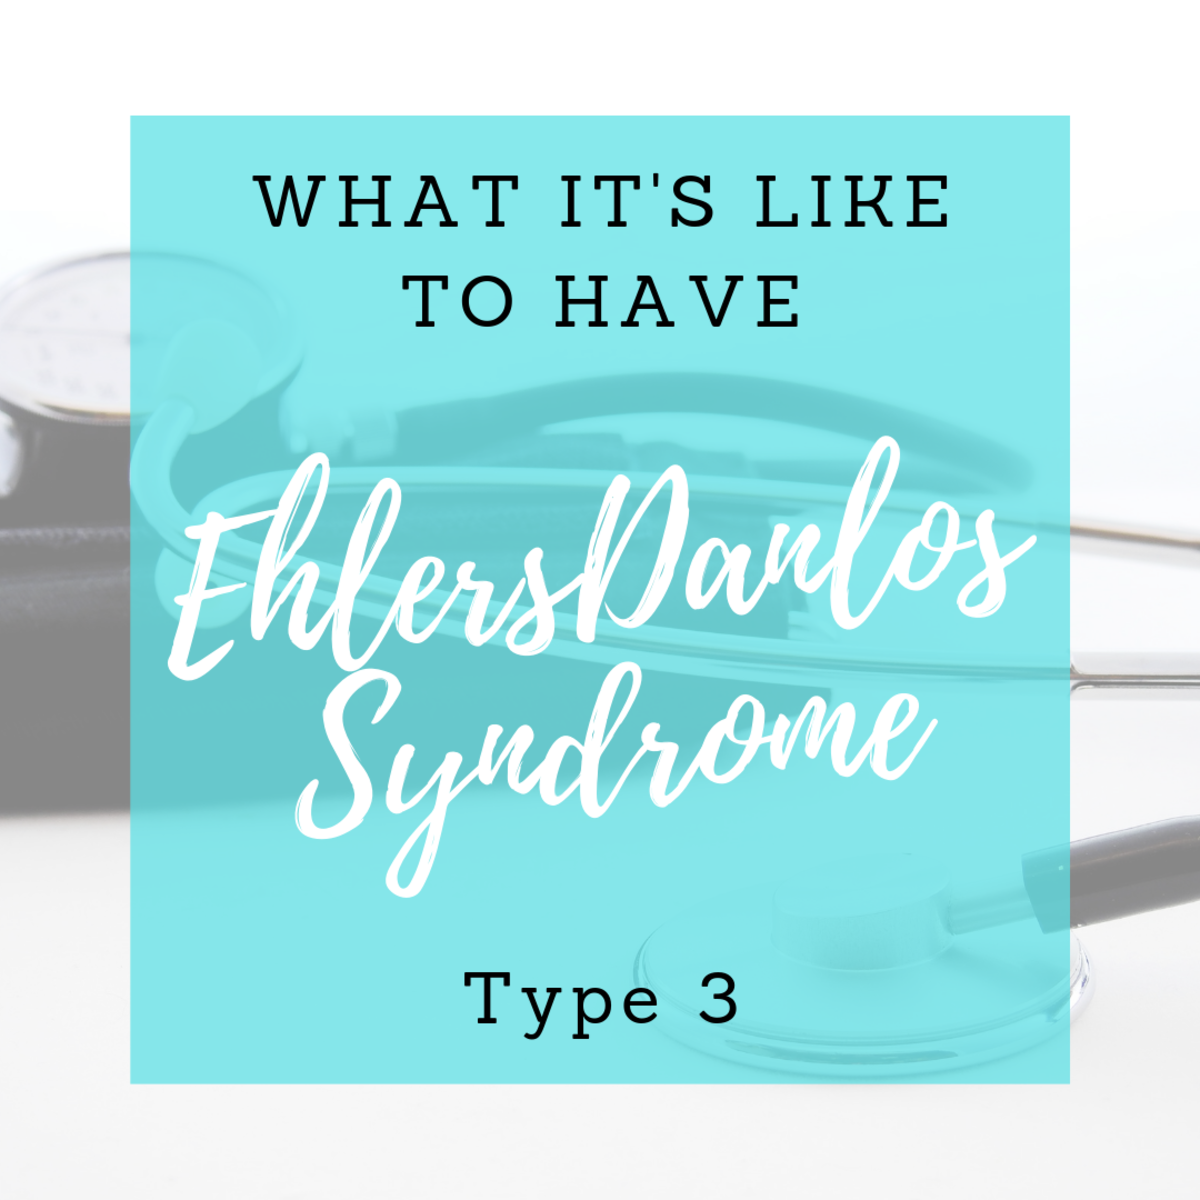 What it's like to live with hyper mobile Ehlers Danlos Syndrome.